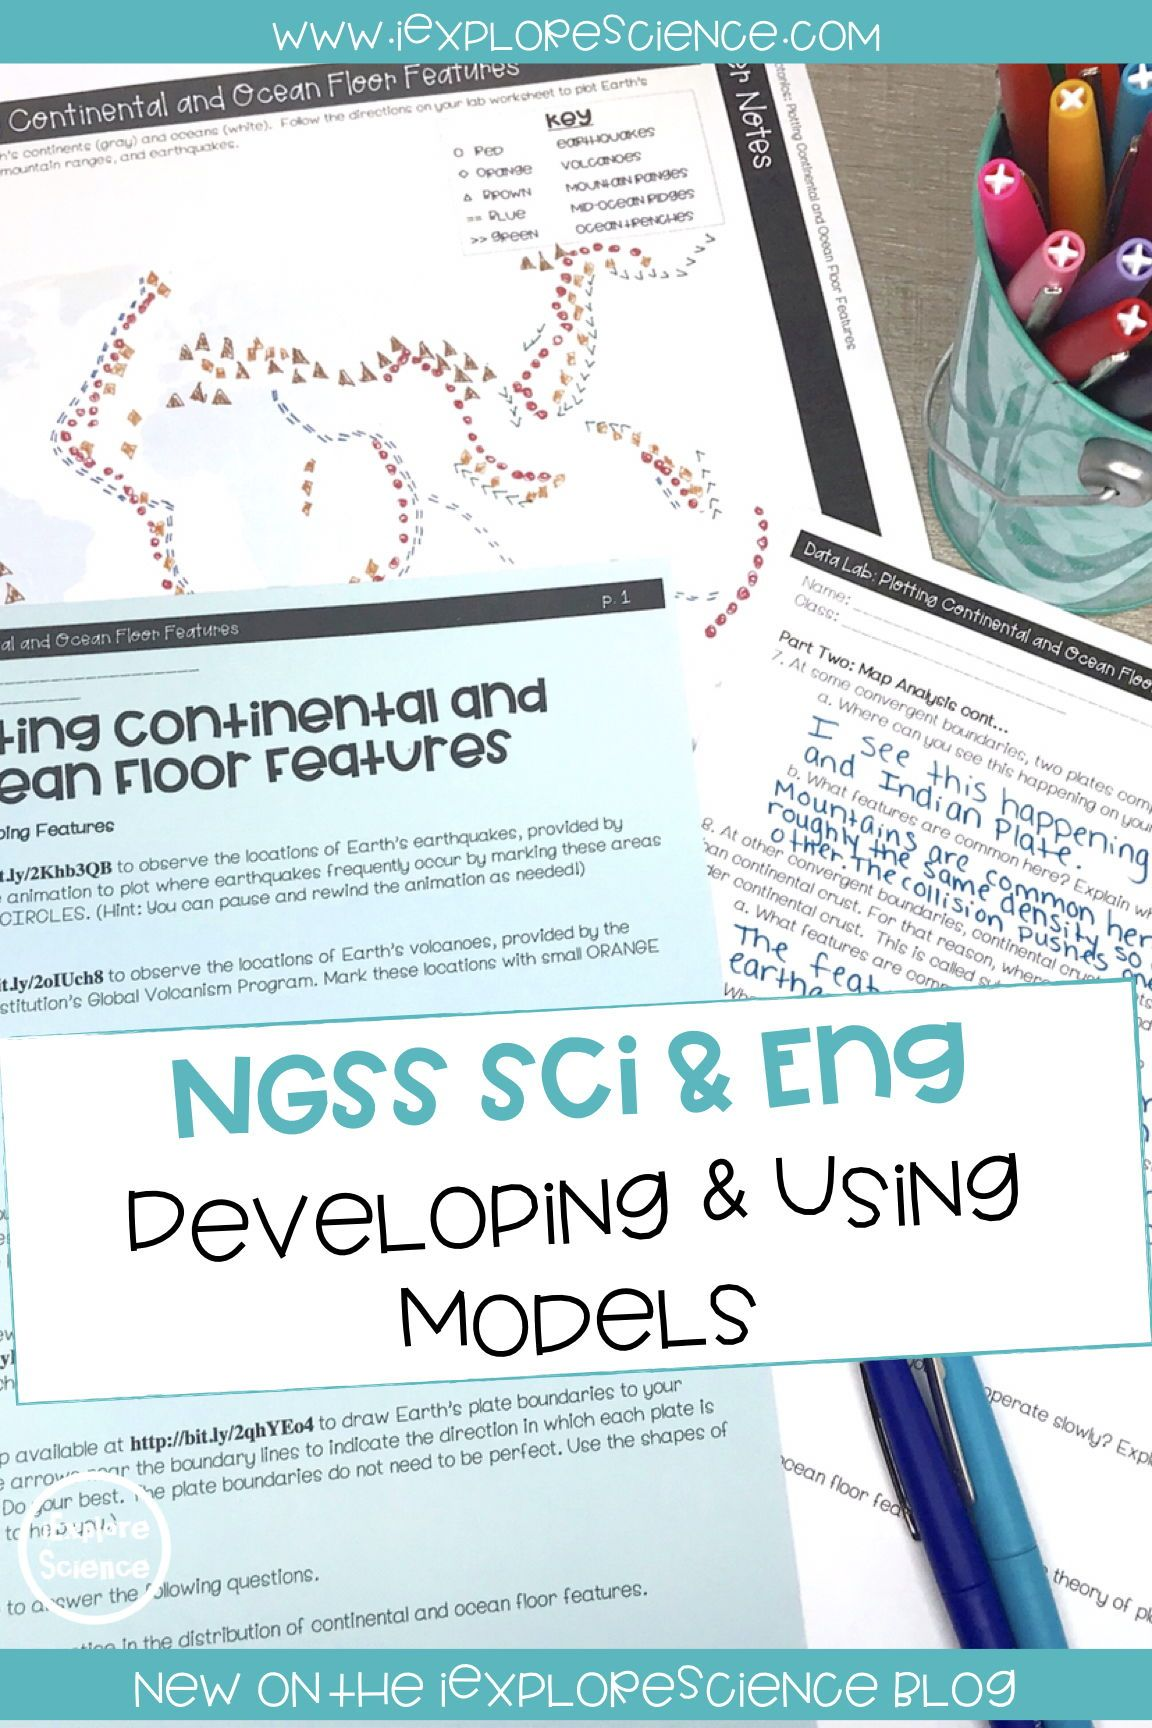 Ngss Modeling Is Not An Art Project Ngss Science Blog Plate Tectonics Lesson